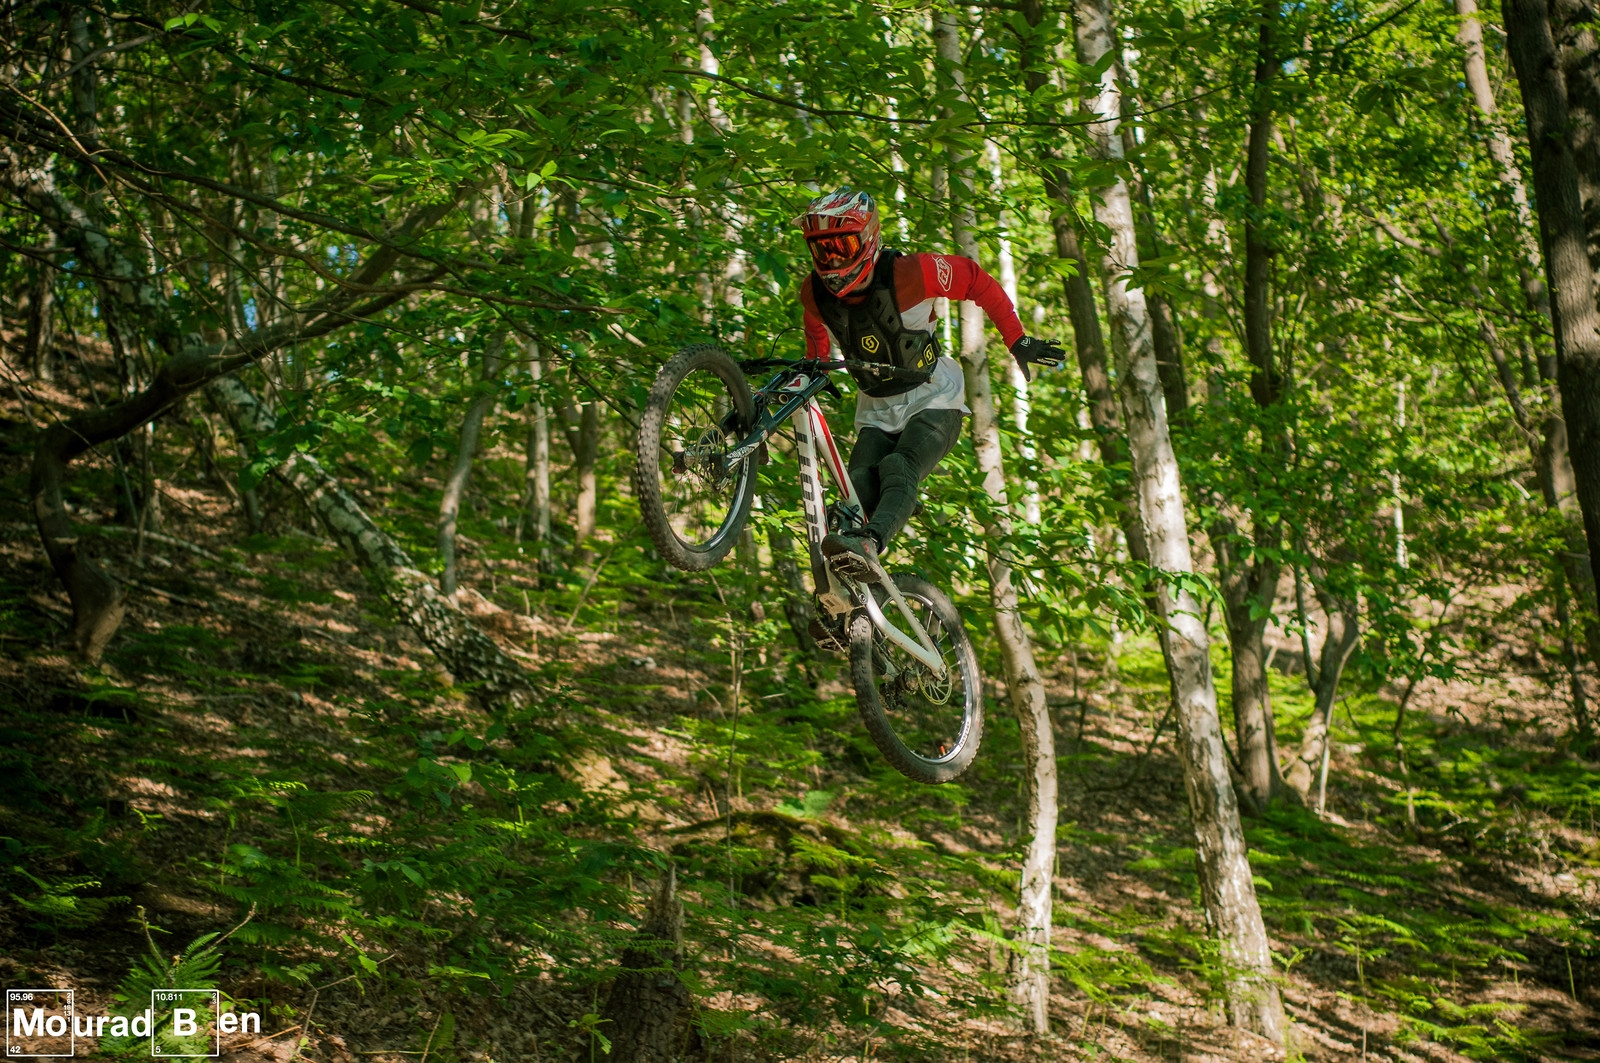 No hander - Romuald_Manach - Mountain Biking Pictures - Vital MTB